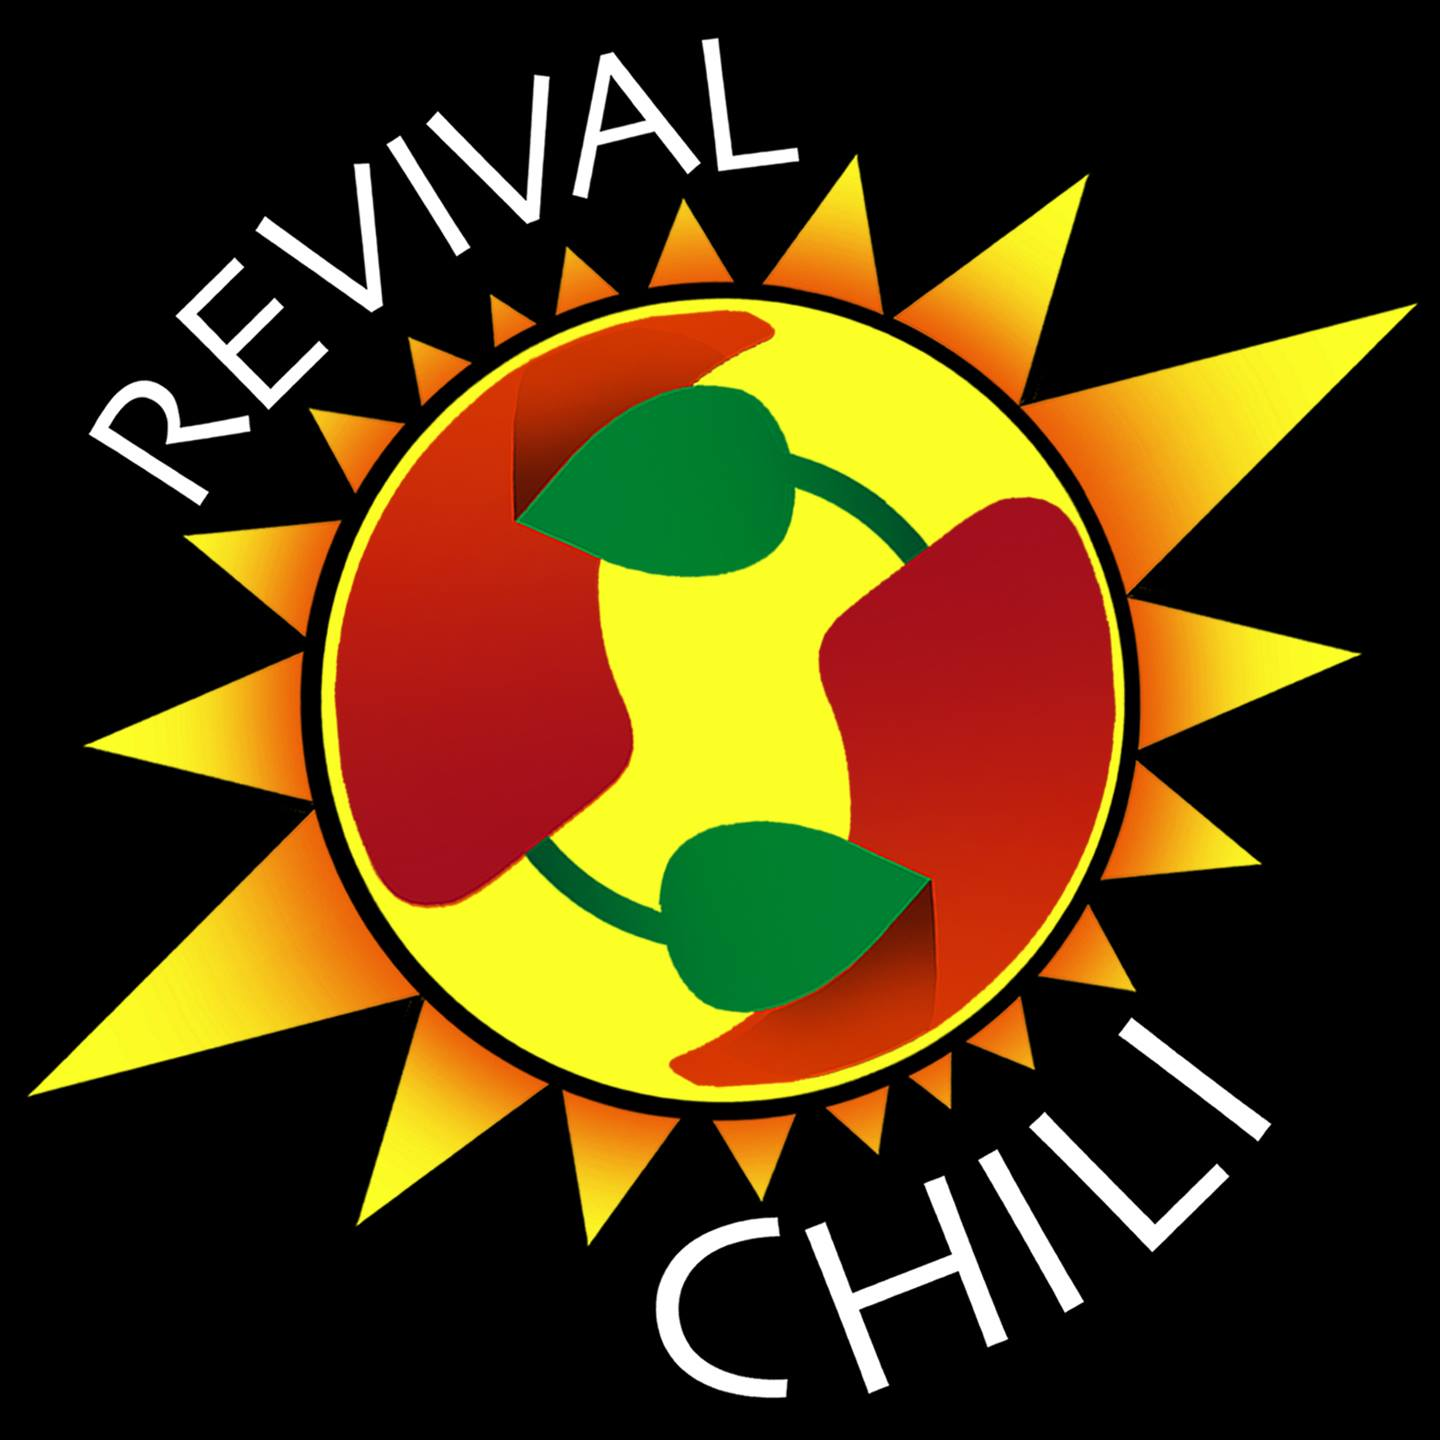 Revival Chili